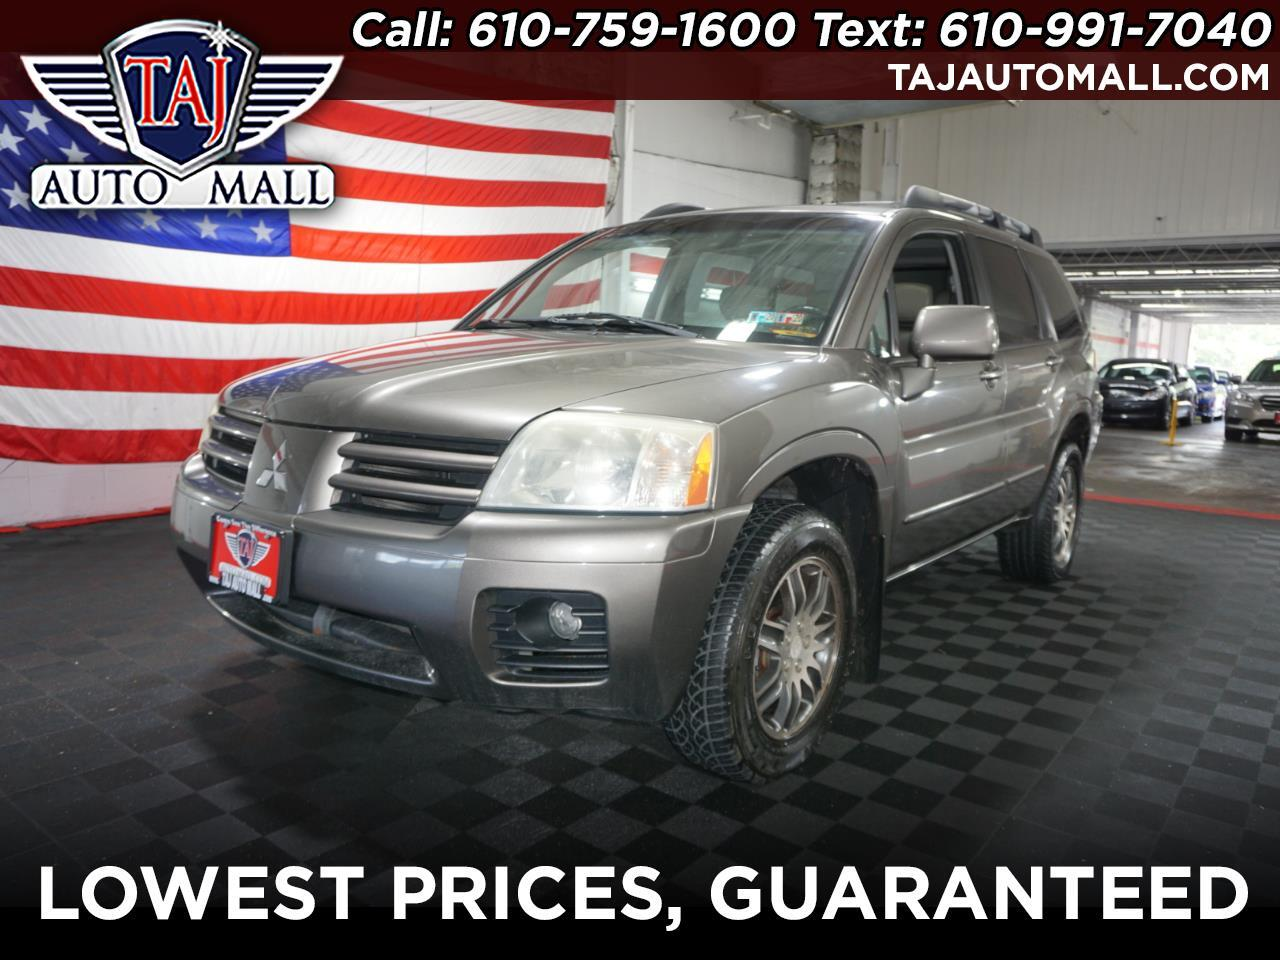 2004 Mitsubishi Endeavor 4dr AWD Limited